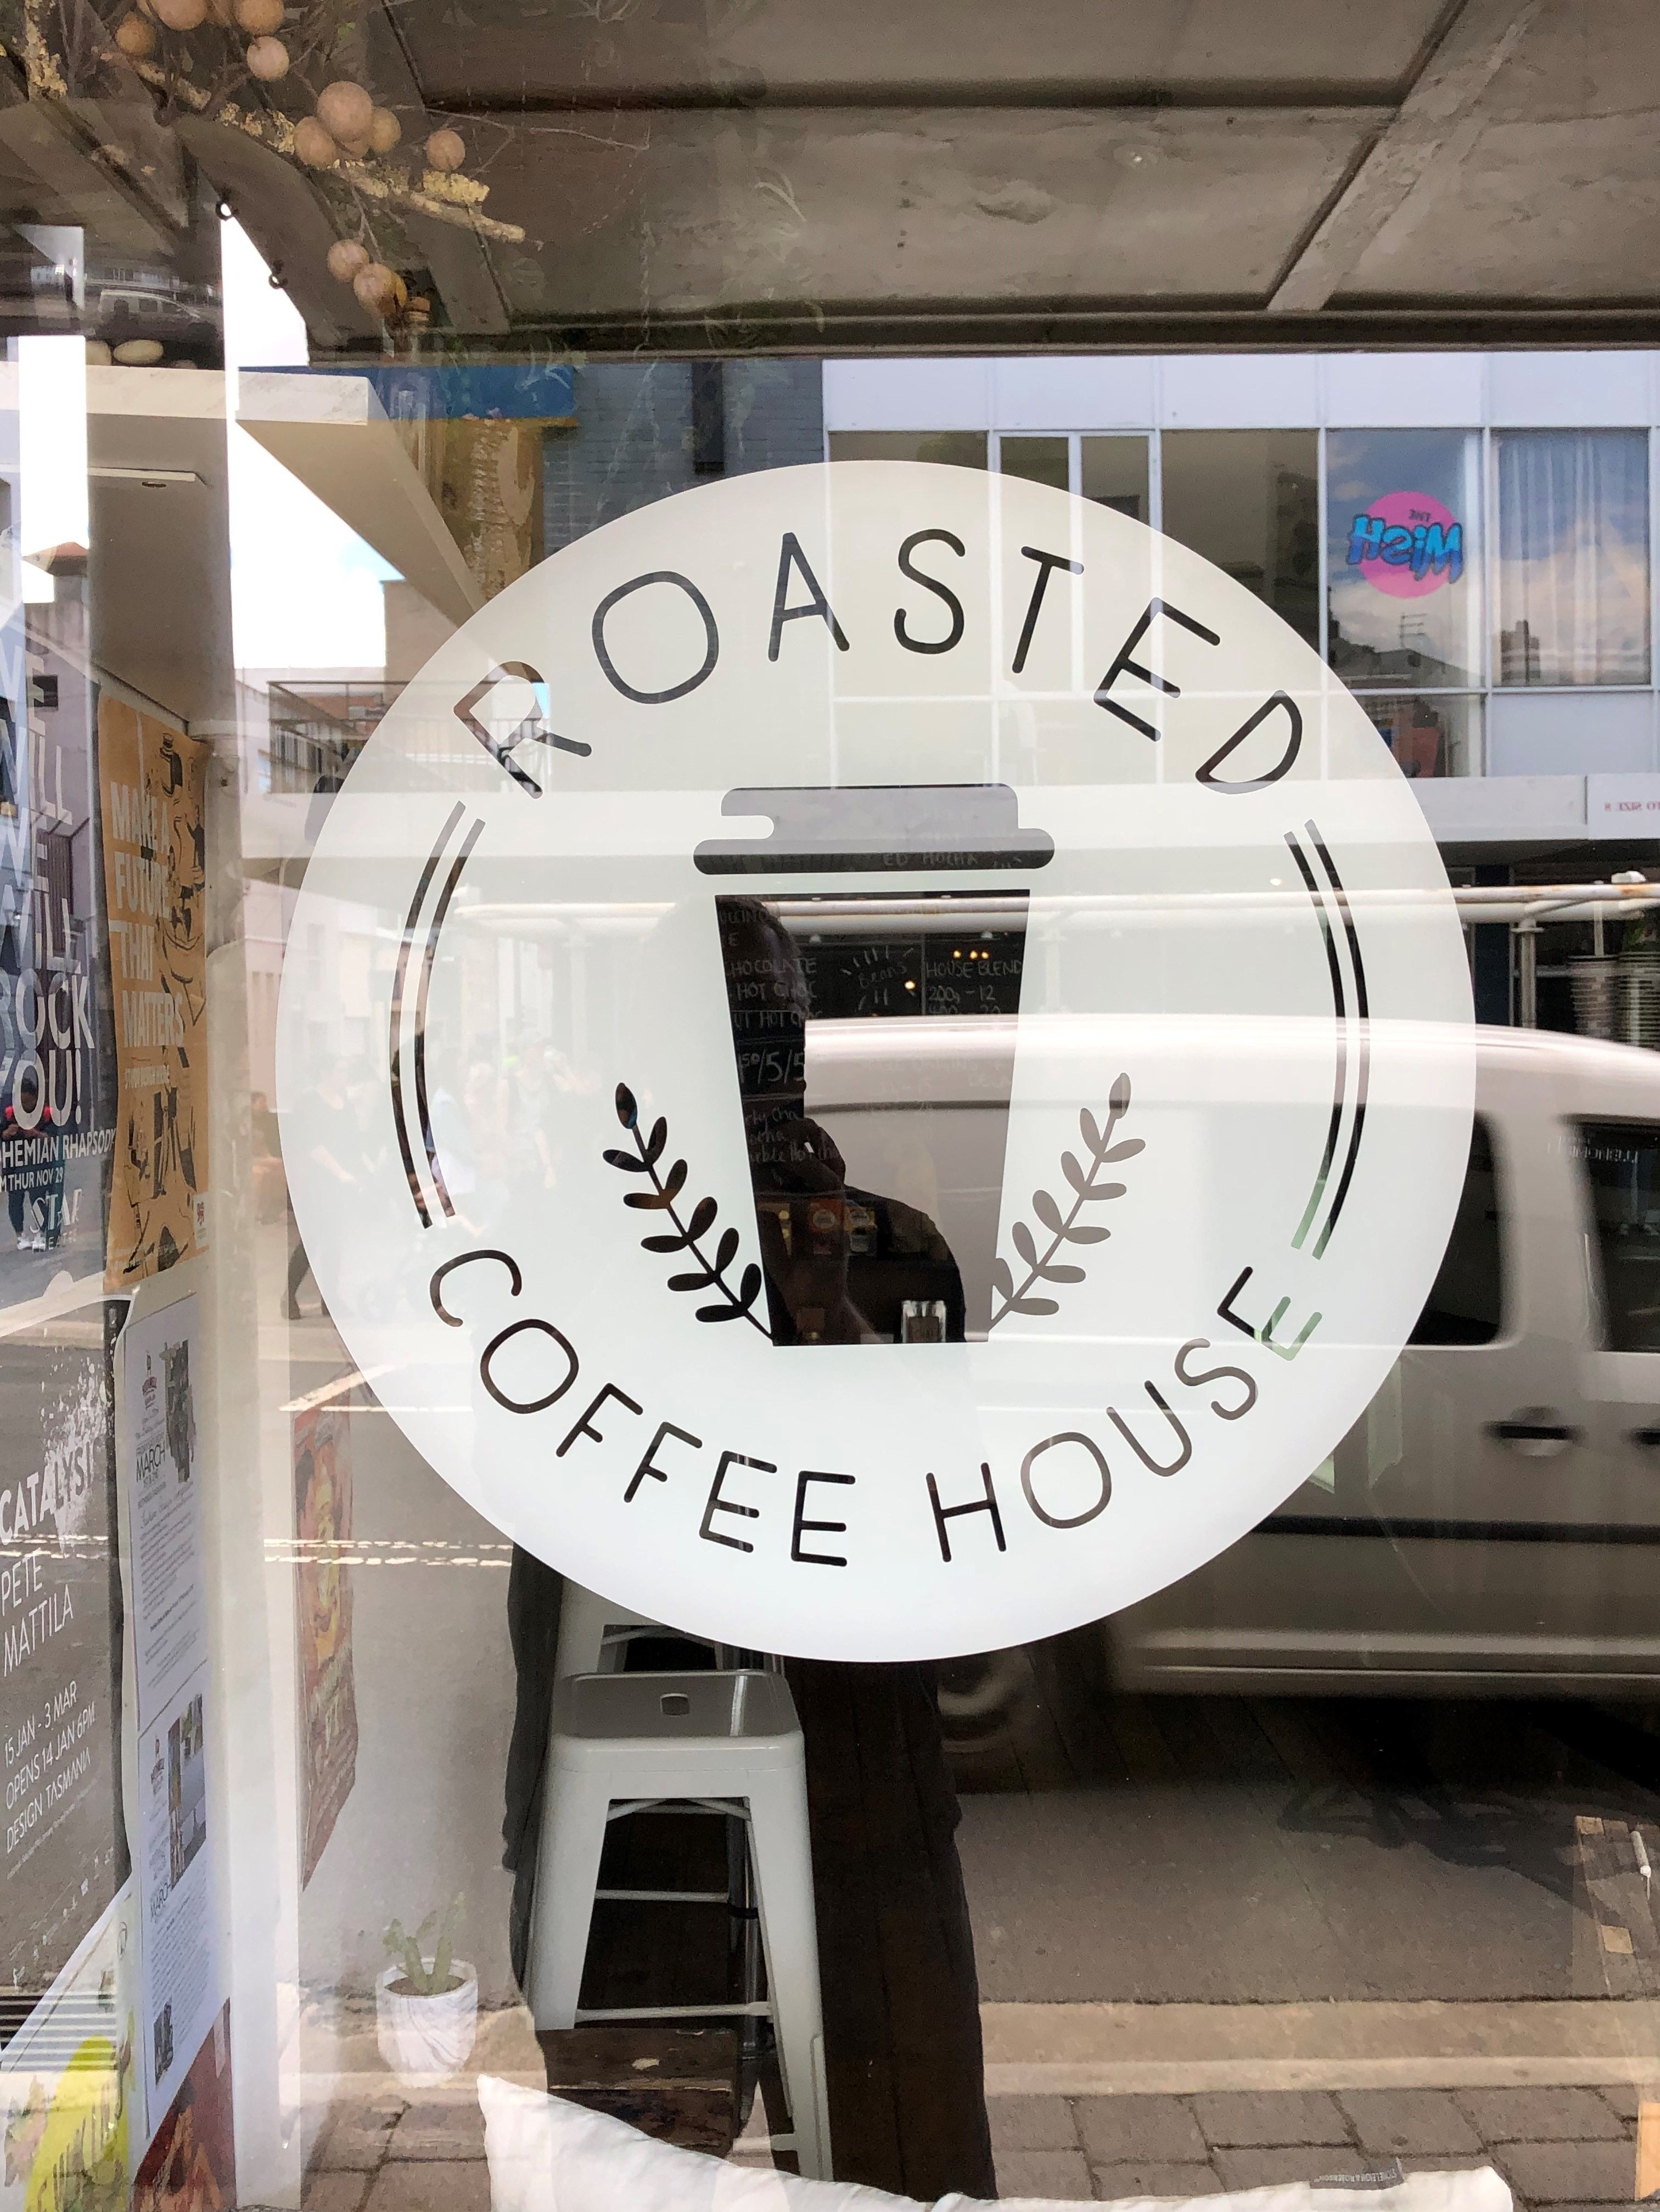 Roasted Coffee House, 99A St John St, Launceston